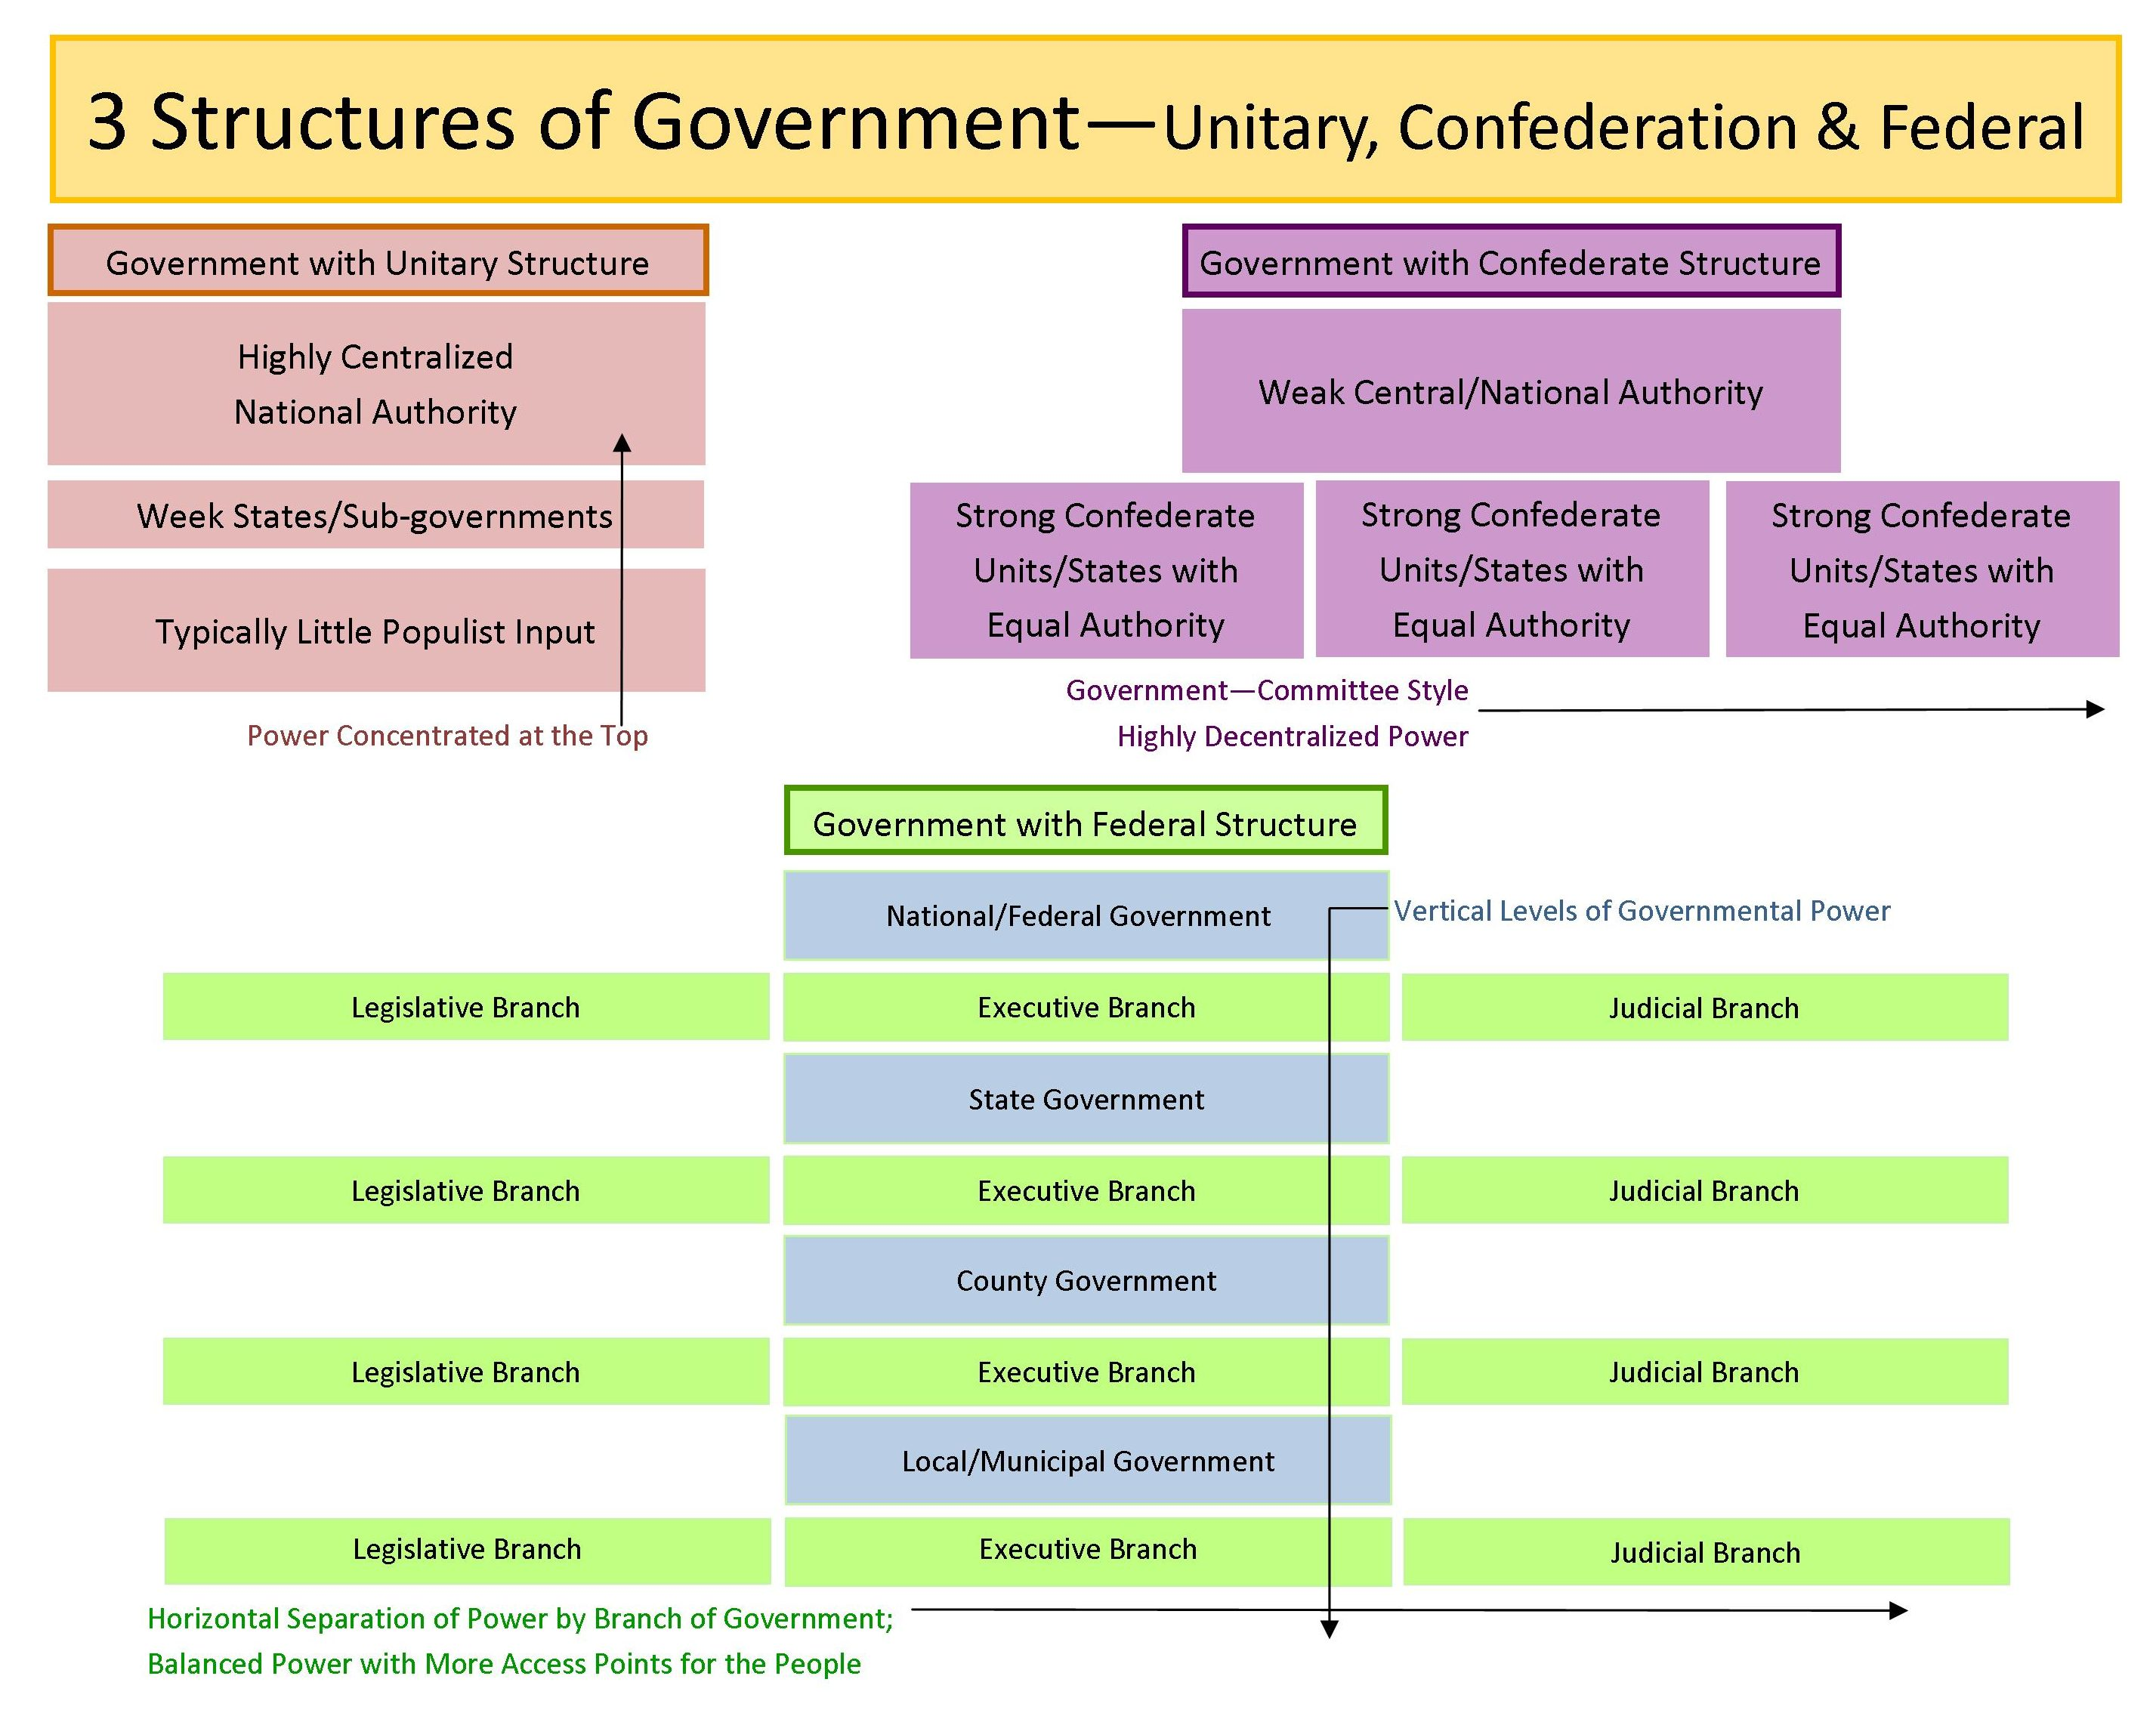 GOVT 2305 Government 3 Structures of Government Chart (1)